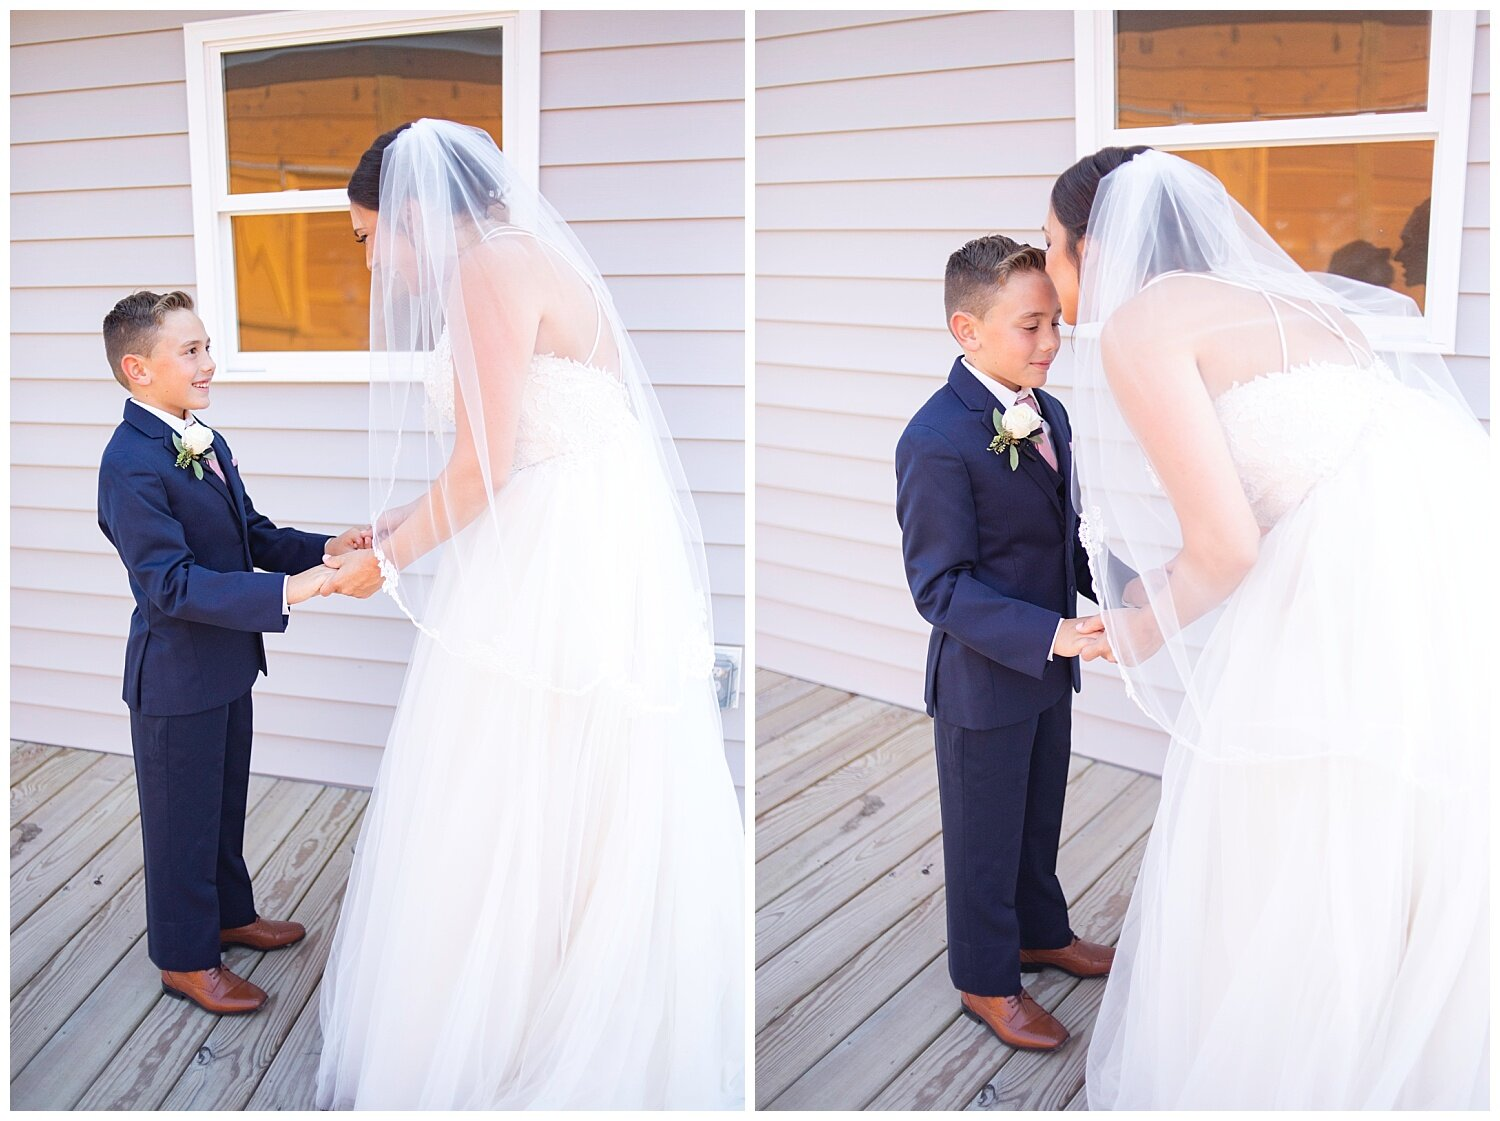 This has to be in the top 5 favorite wedding moments for me. There's nothing sweeter than the bond between a Mama and her baby boy.